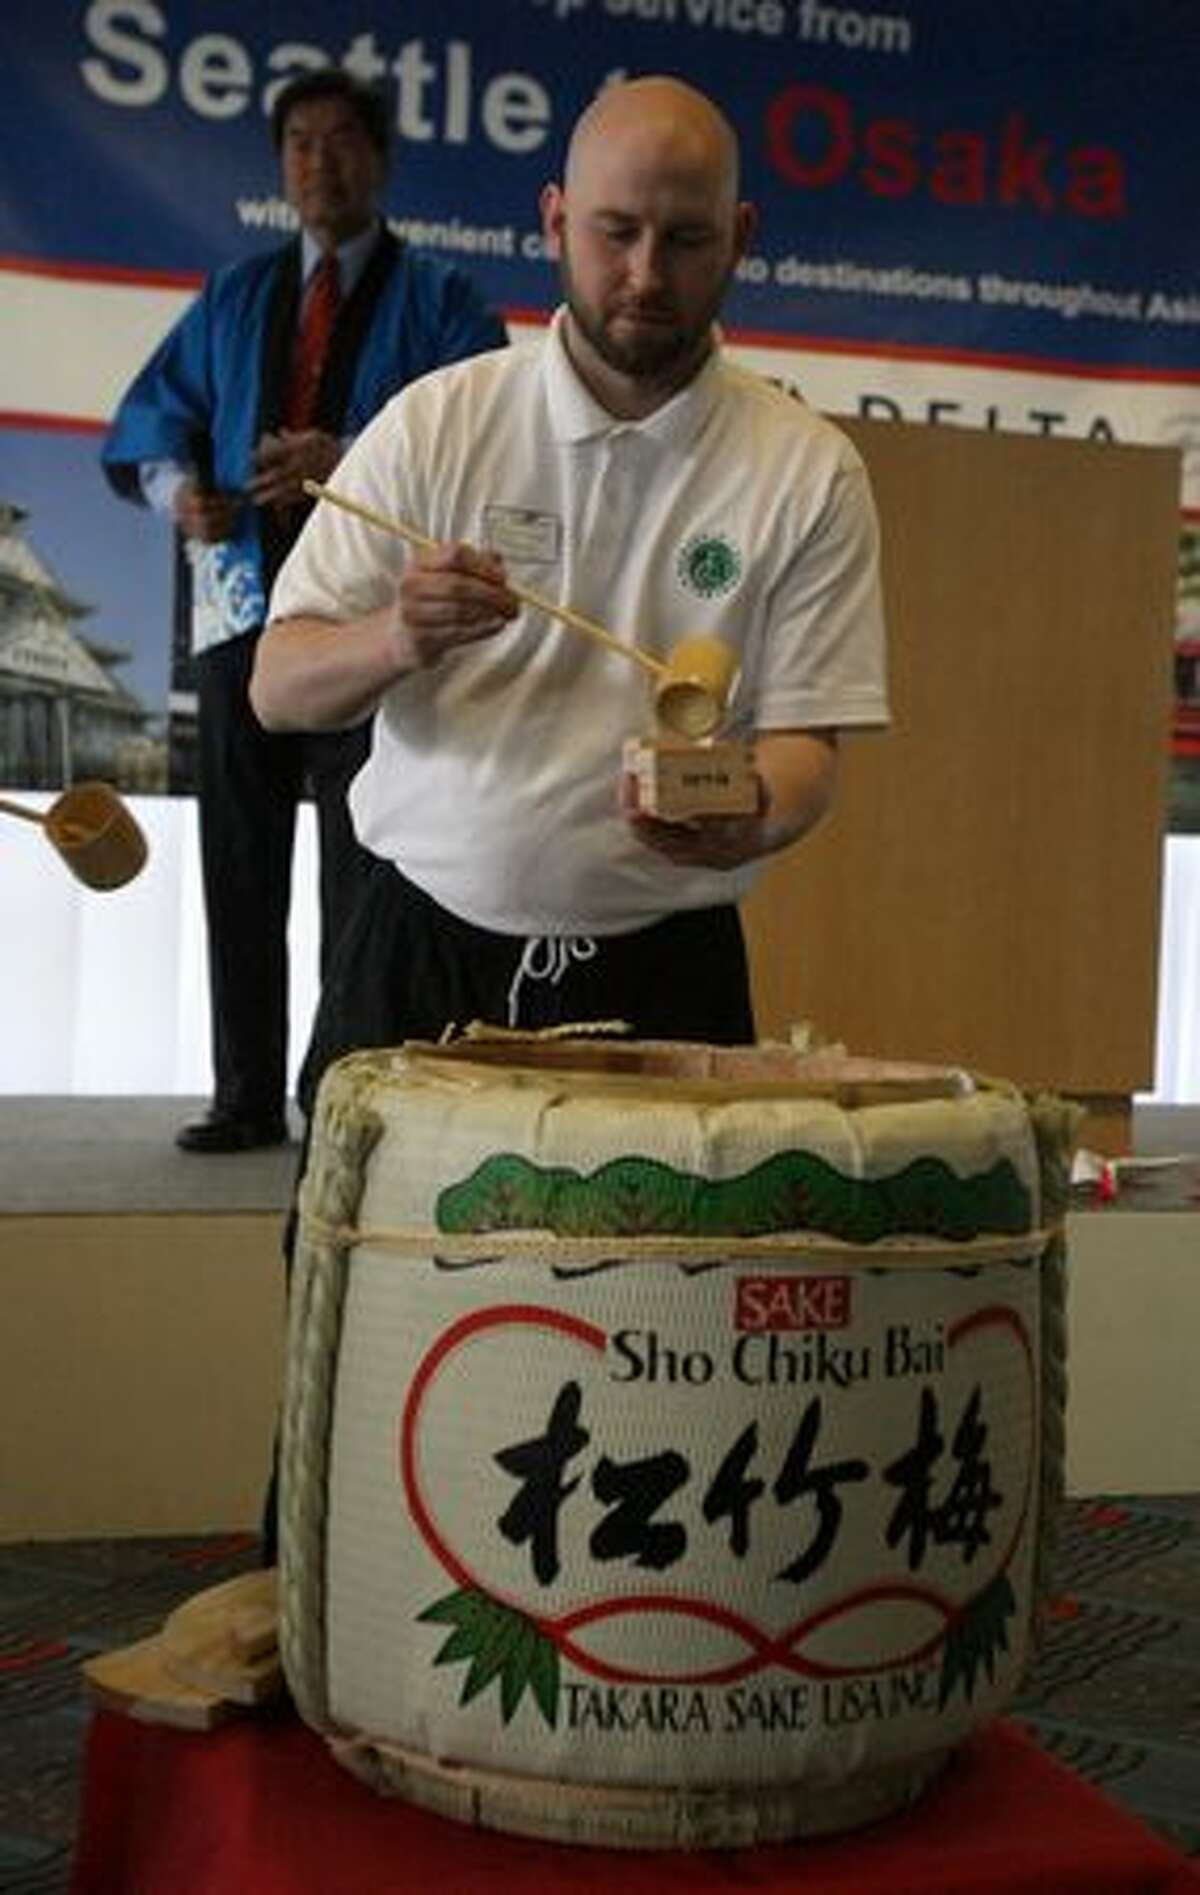 A server pours sake during a ceremony at SeaTac Airport marking the start of Delta Air Lines' nonstop flights between Seattle and Osaka, Japan.